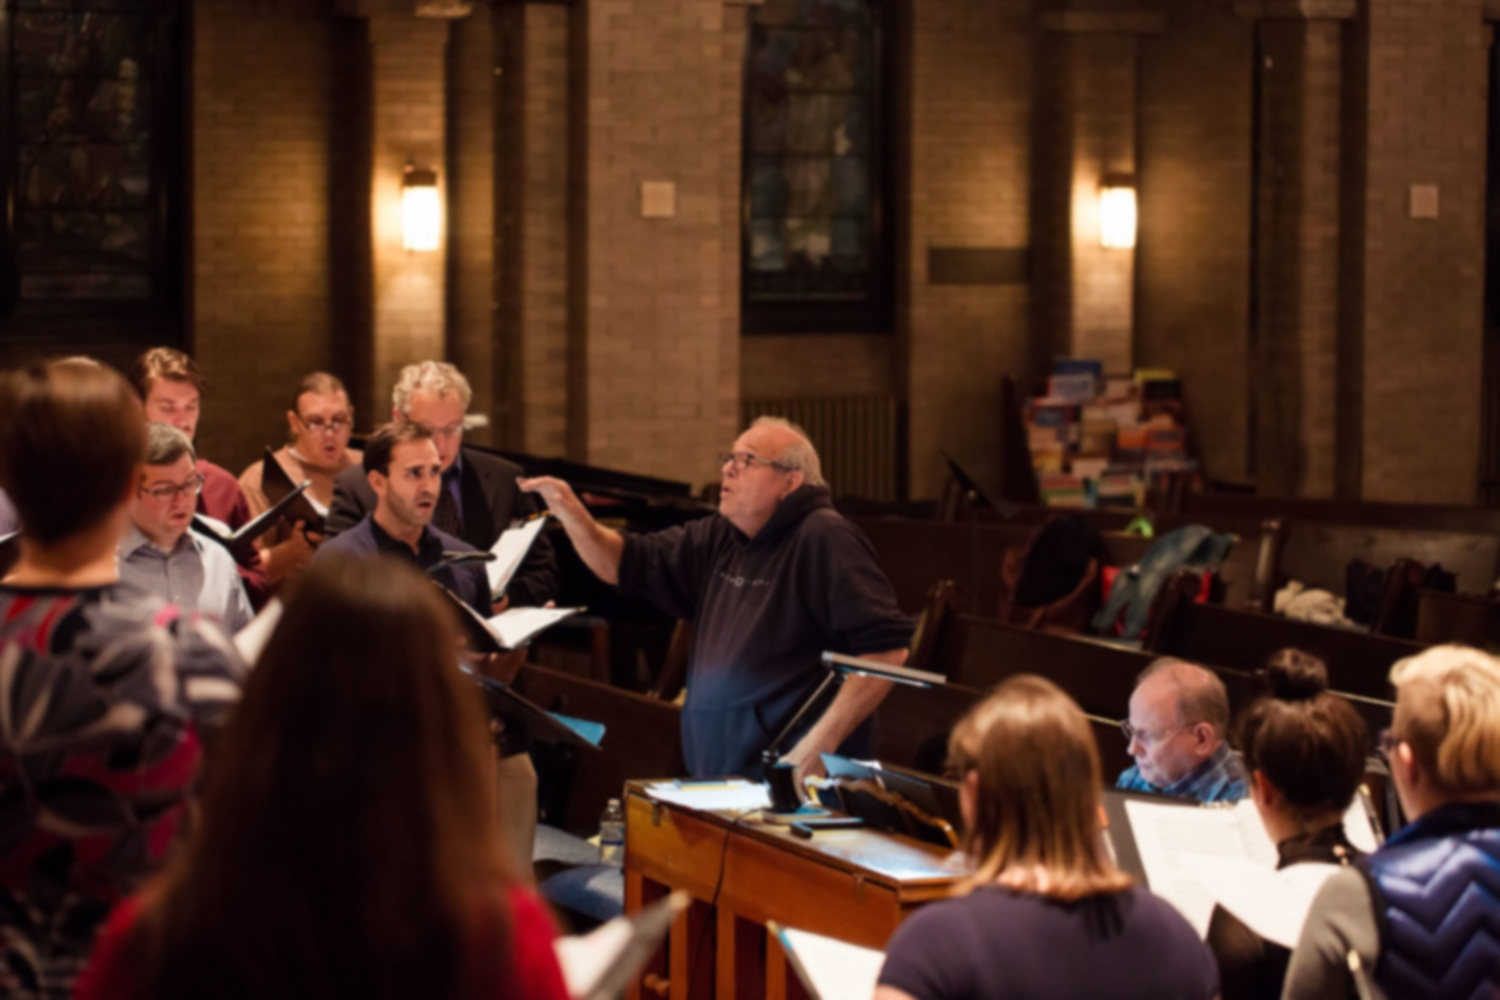 Bruce's Blog - By Bruce Tammen,Conductor and Artistic Director